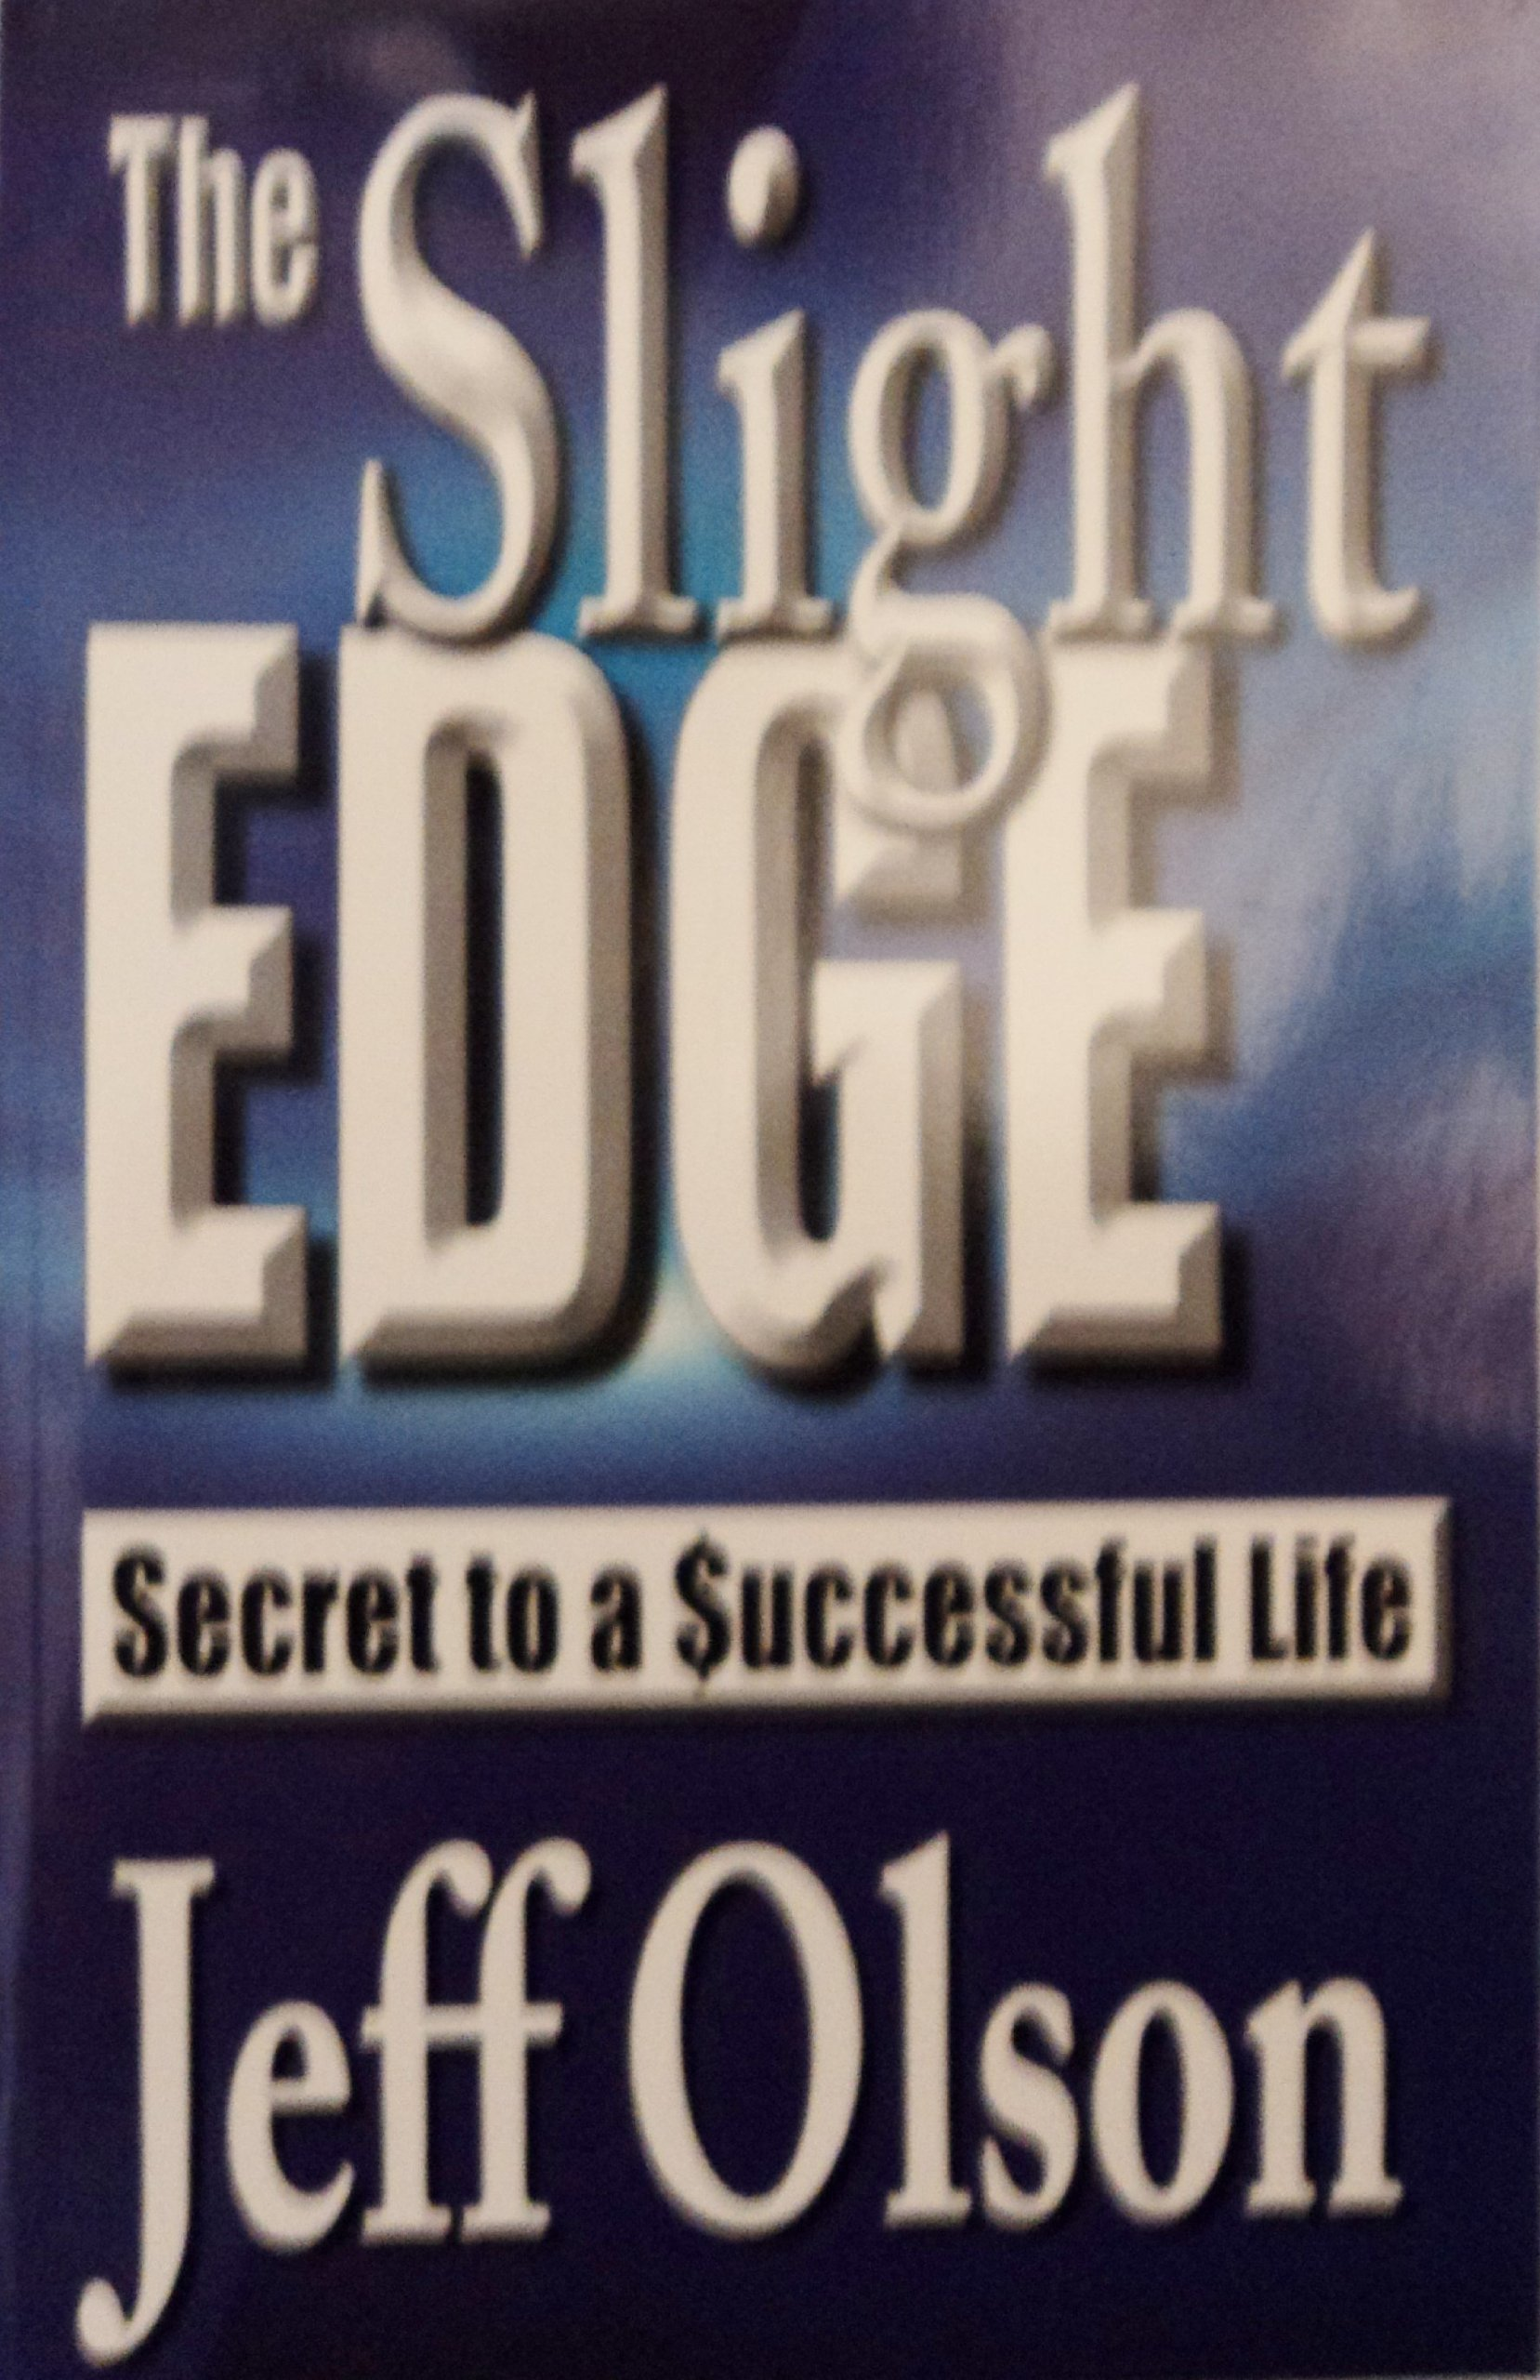 Slight Edge Secret Successful Life product image